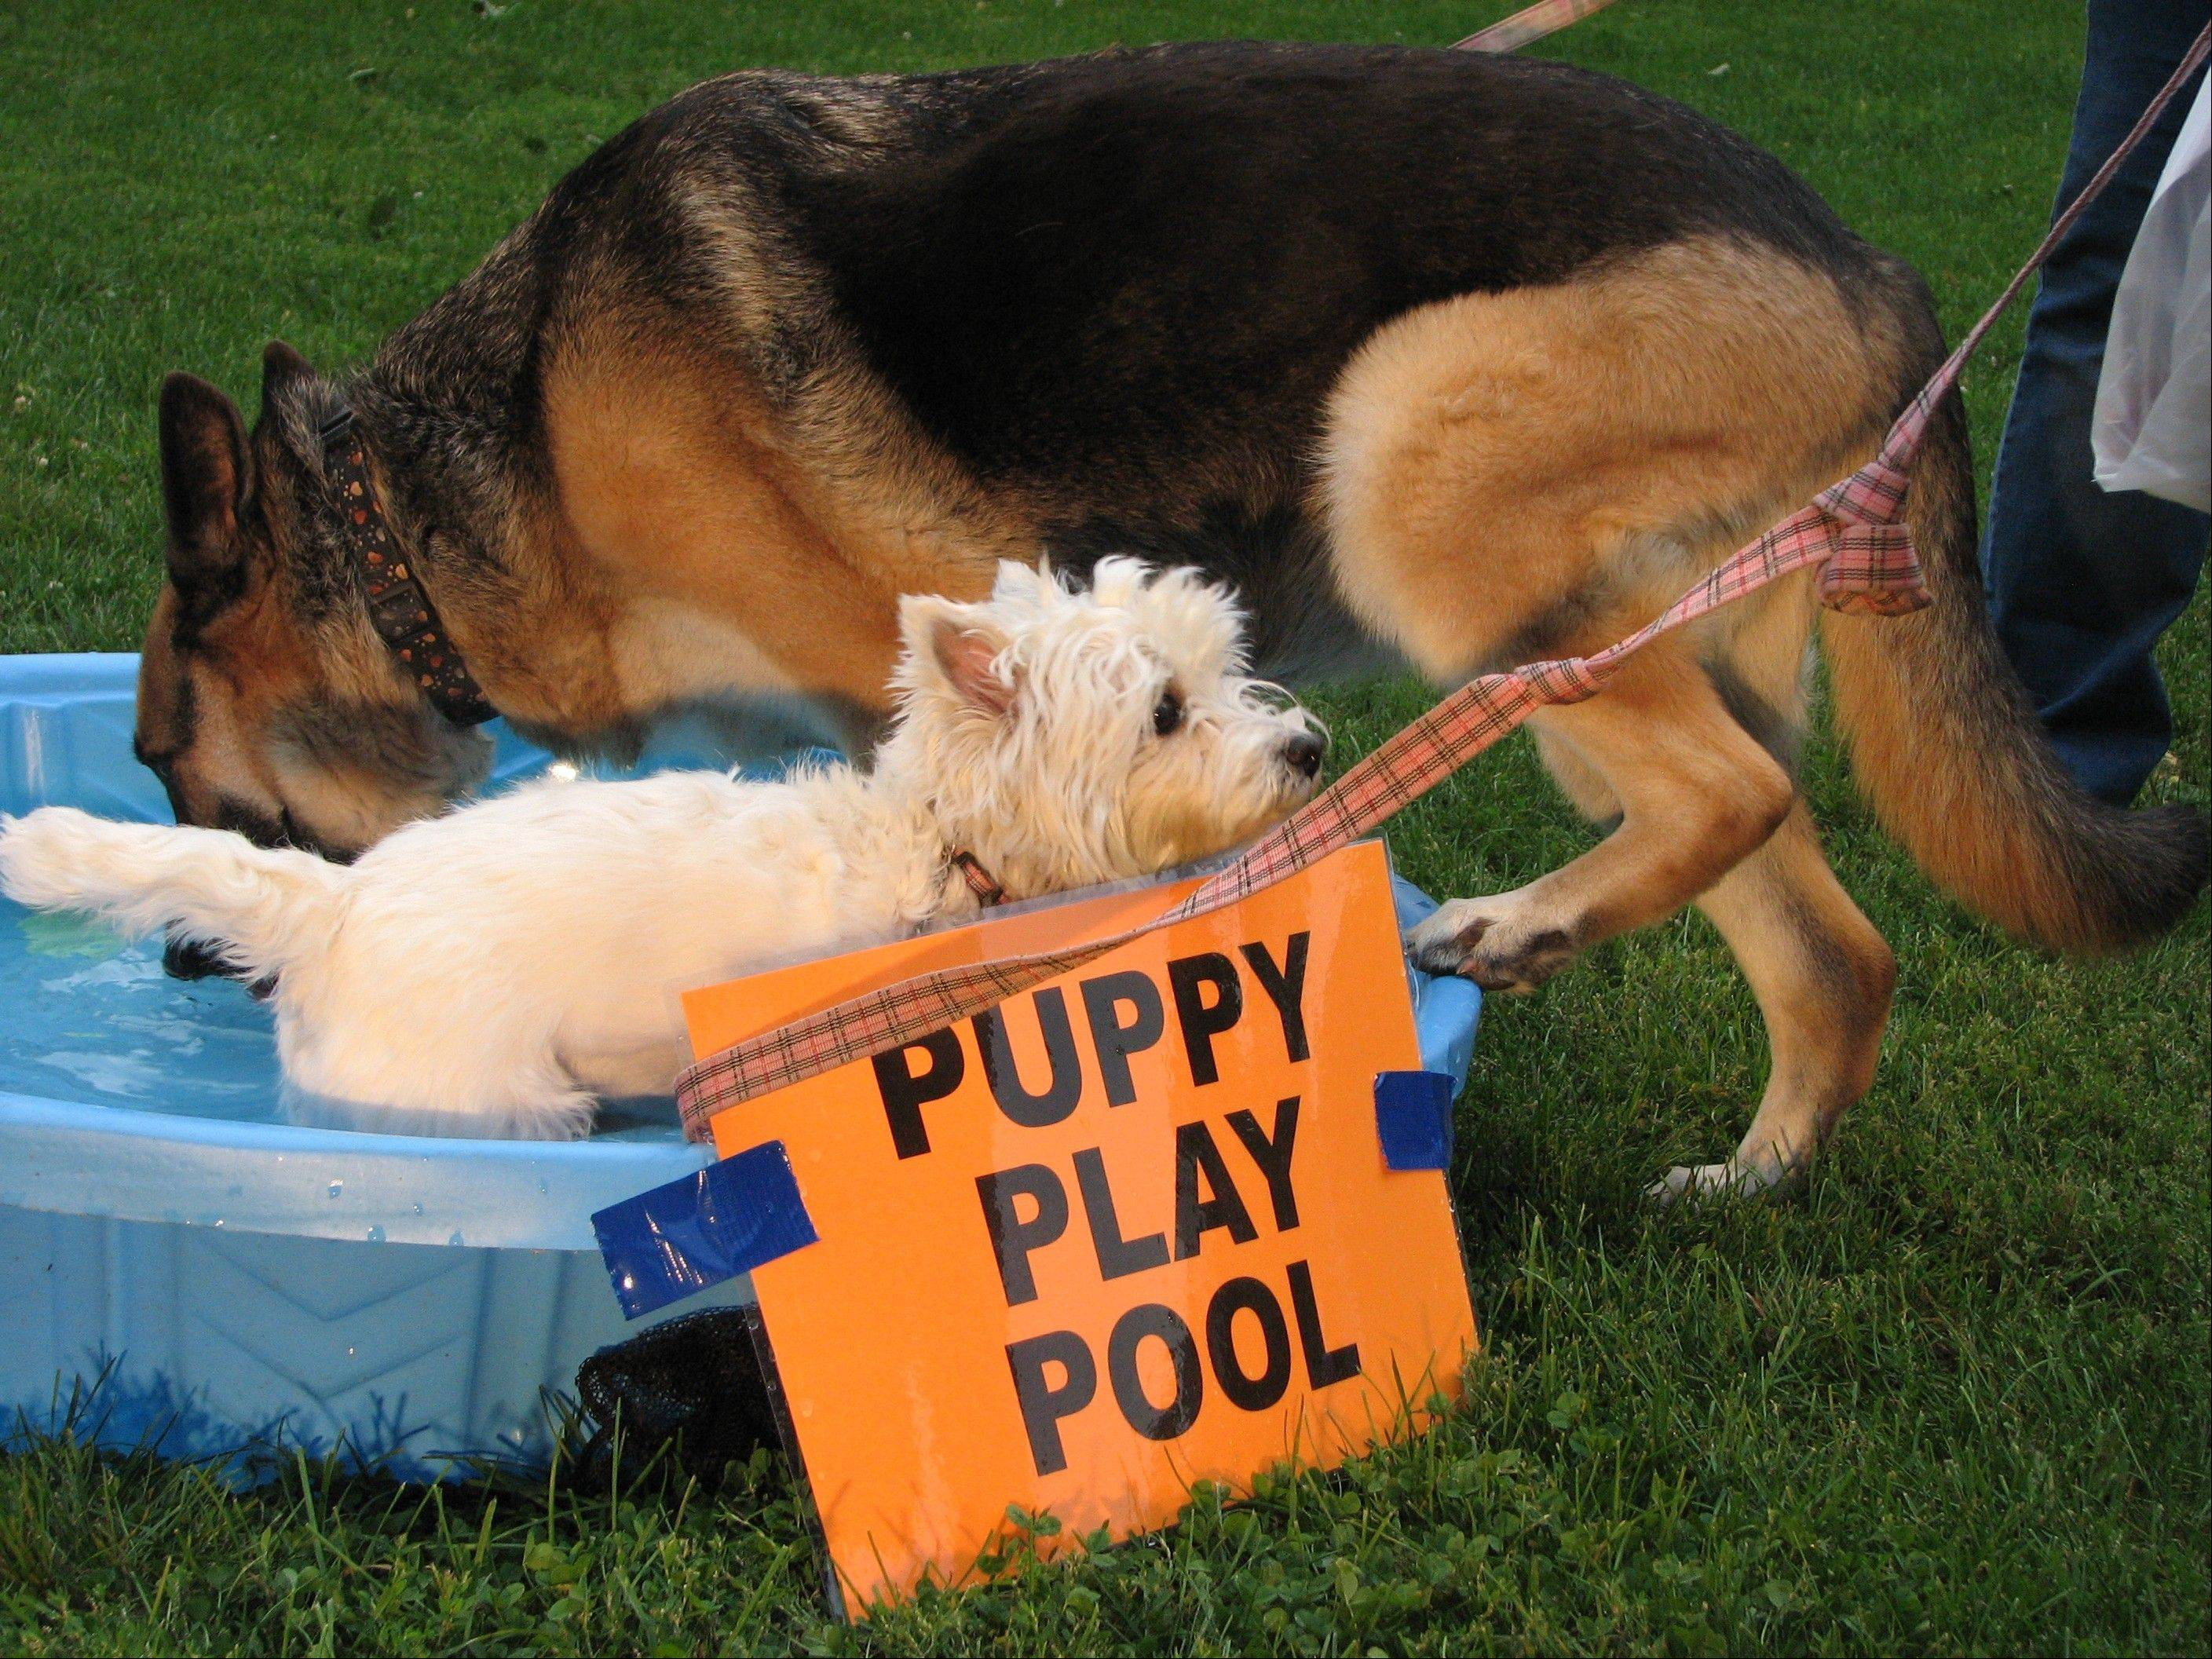 The Palatine Park District will host a Canine Carnival from 6-7:30 p.m. Thursday, Aug. 2, at the Fred P. Hall Amphitheater. The special event, designed for dogs and their owners, includes games and activities for dogs, raffles, vendors and more.